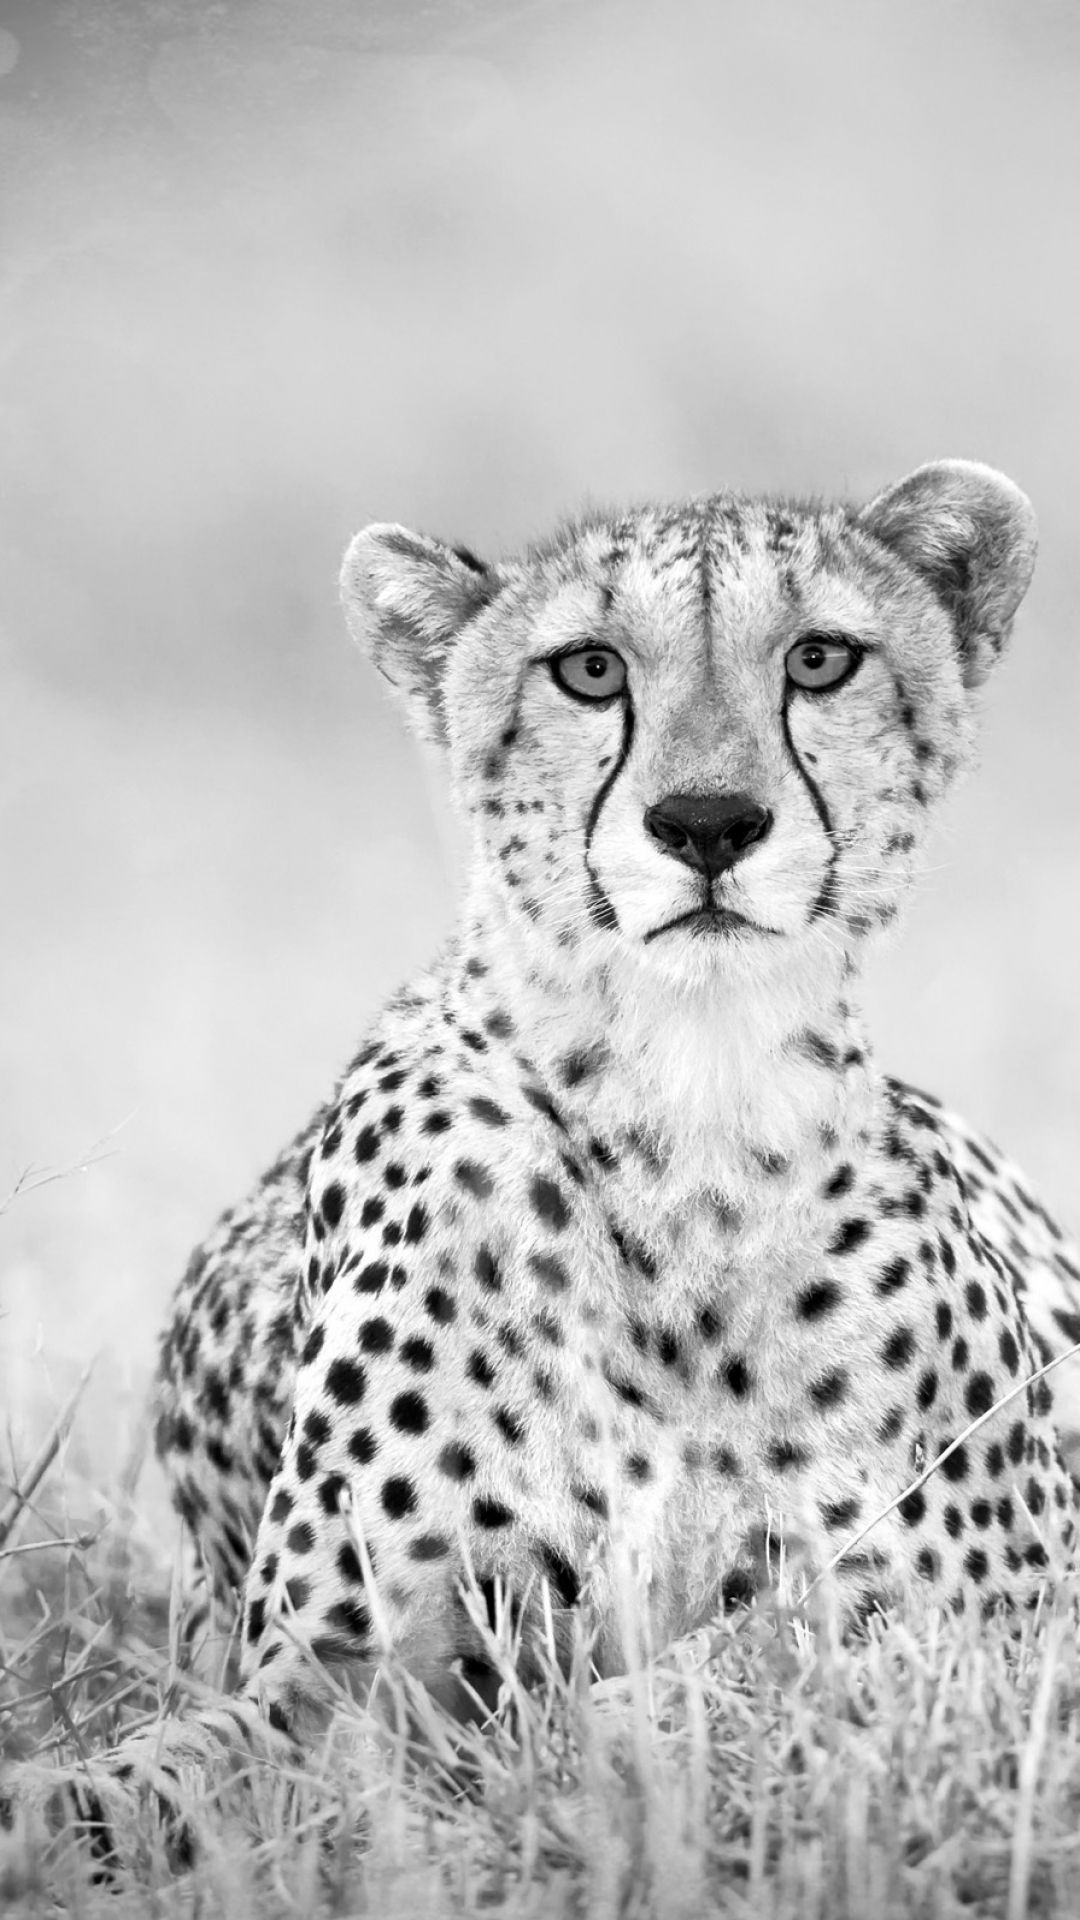 Cheetah Wallpapers Wallpaper Hd Cheetah Wallpaper Cheetah